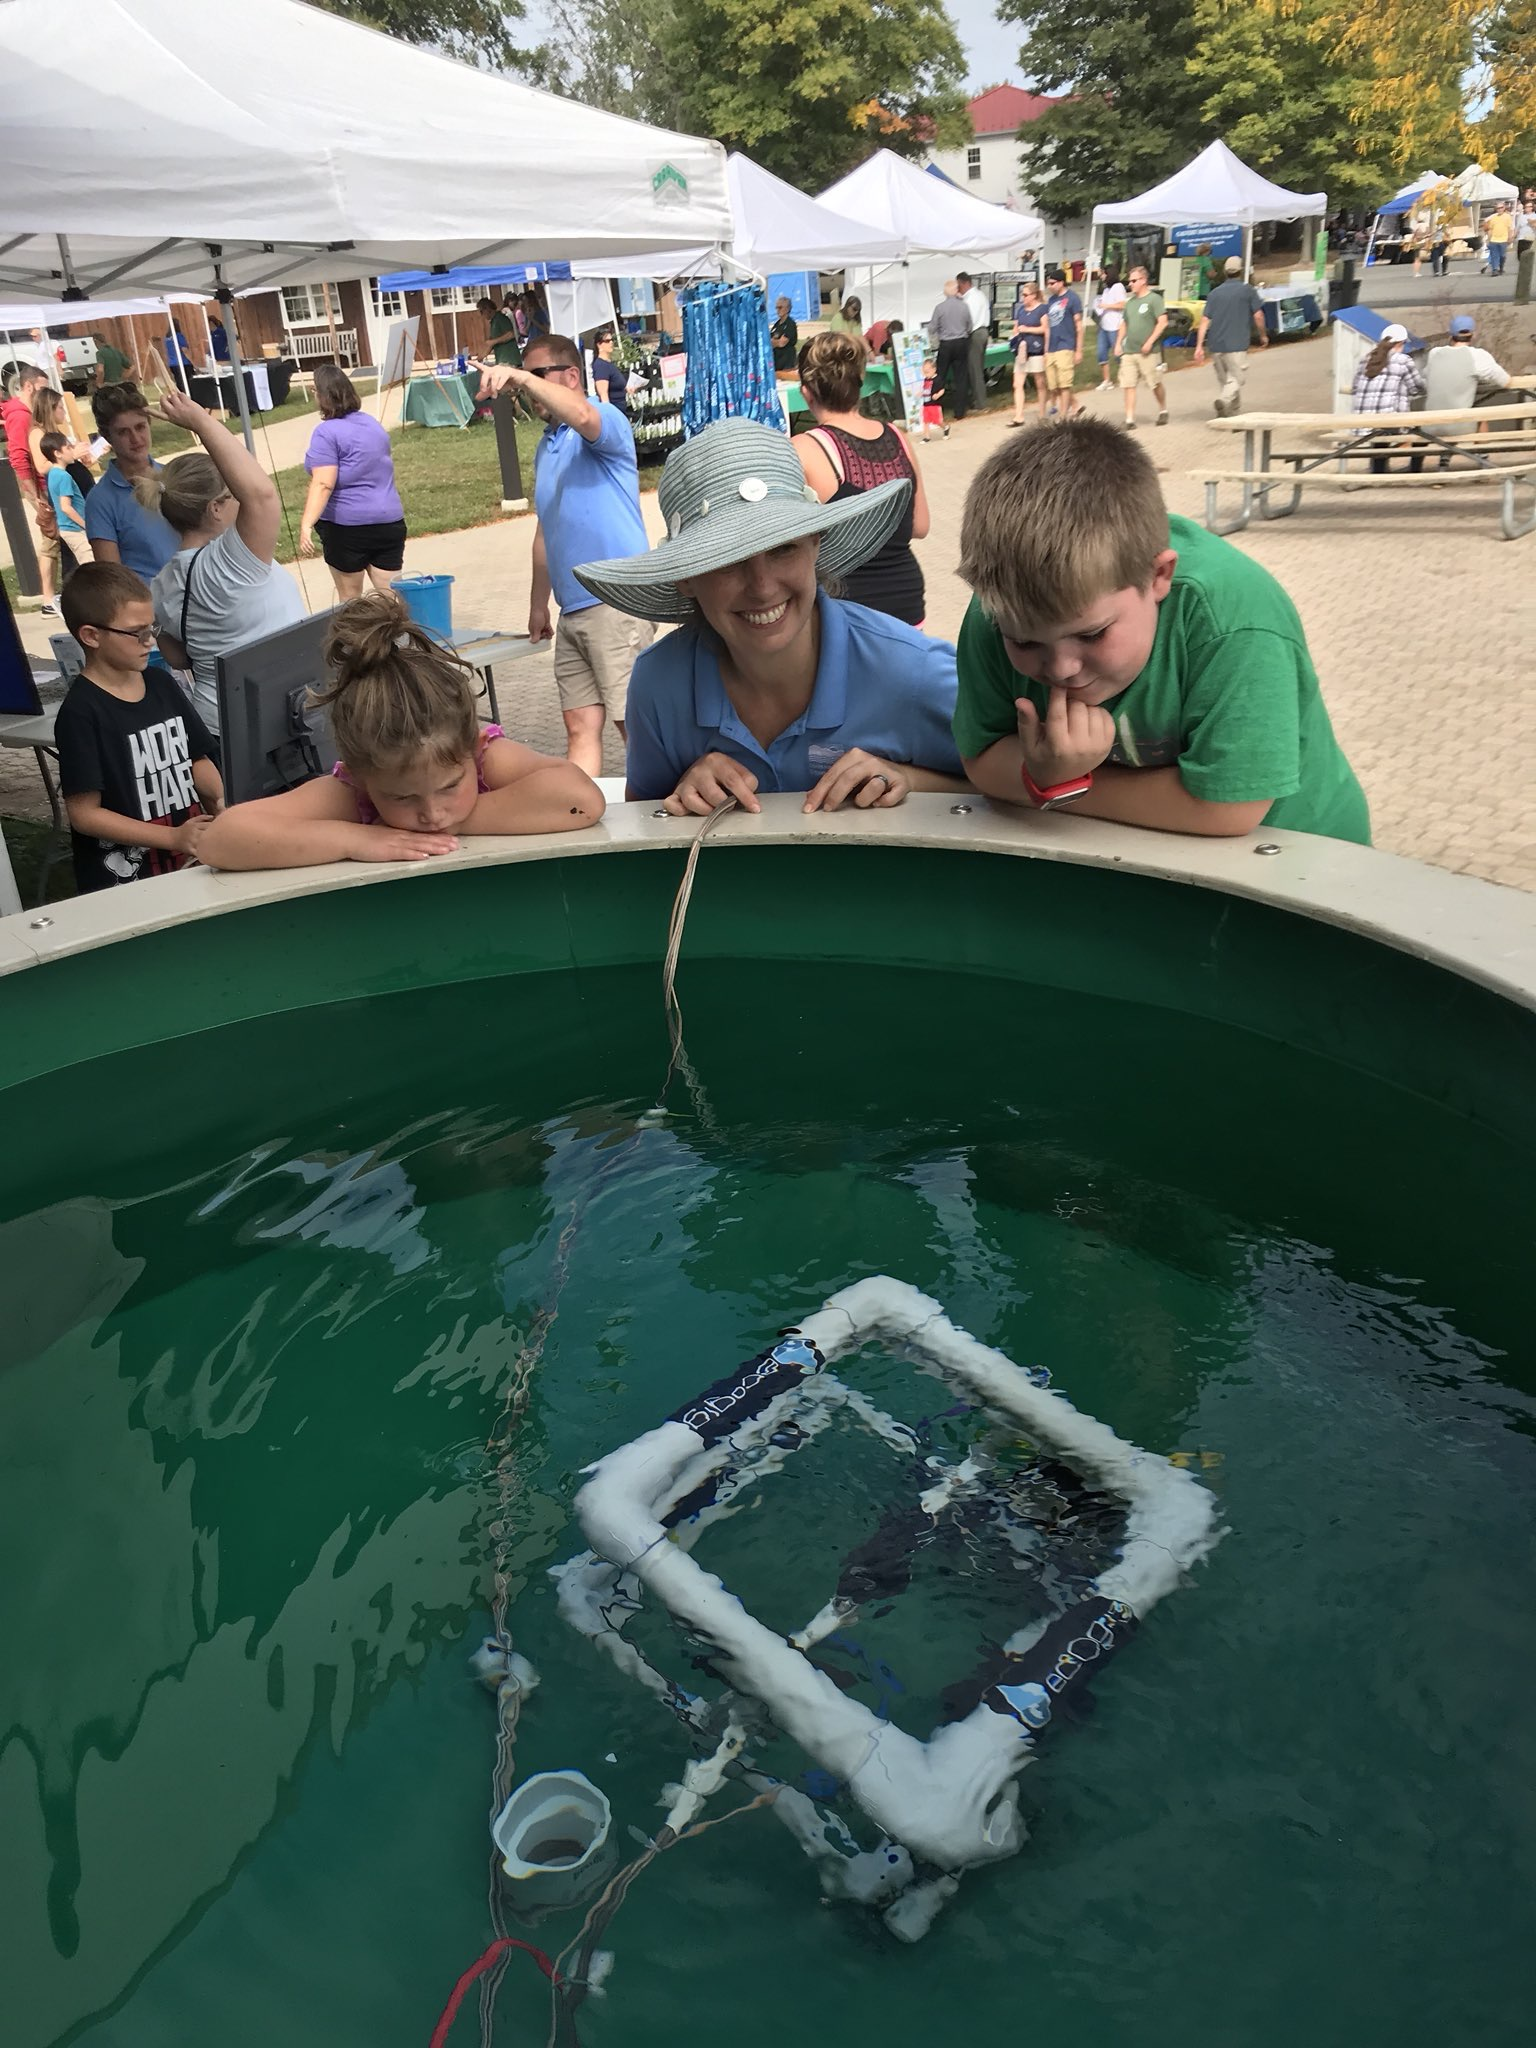 <div style='color:#000000;'><br /><br /><h2>2017 Patuxent River Appreciation Days (PRAD). ECOGIG researcher Laura Lapham had a model ROV (remotely operated vehicle) at PRAD - this is a festival which creates awareness, recognition, and promotion of the economic, social, recreational, cultural and historical impact of the Patuxent River and the basin through which it flows.</h2>Photo courtesy of Laura Lapham (ECOGIG)</div>